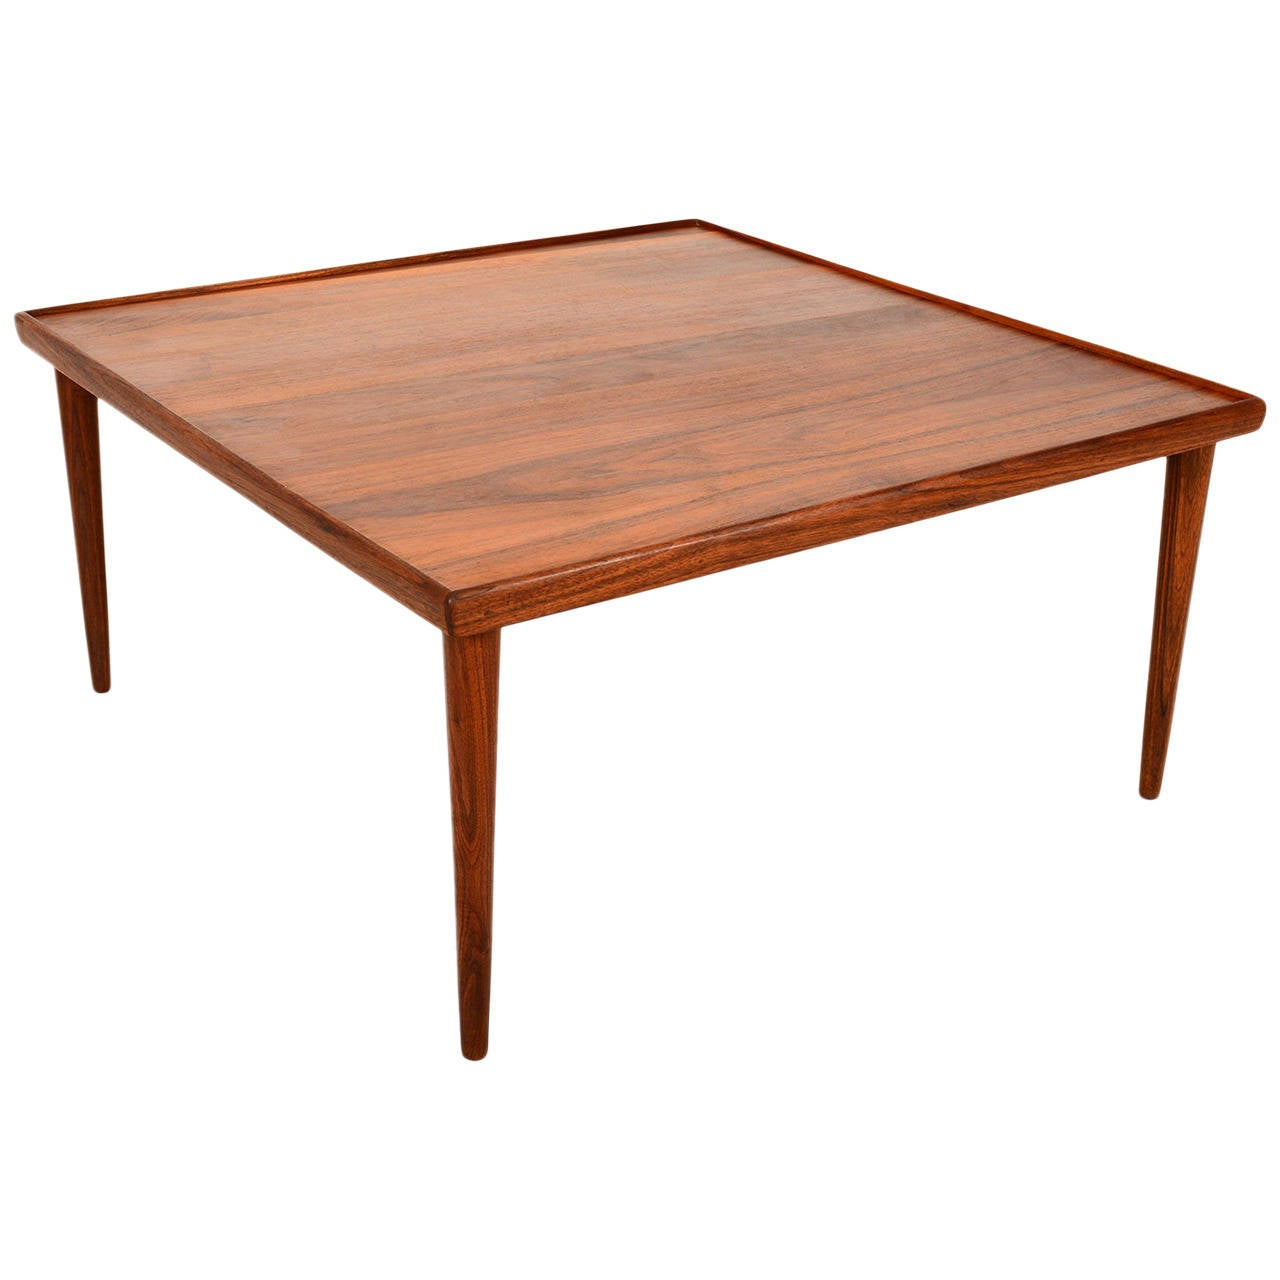 Teak Square Coffee Table Danish Modern At 1stdibs